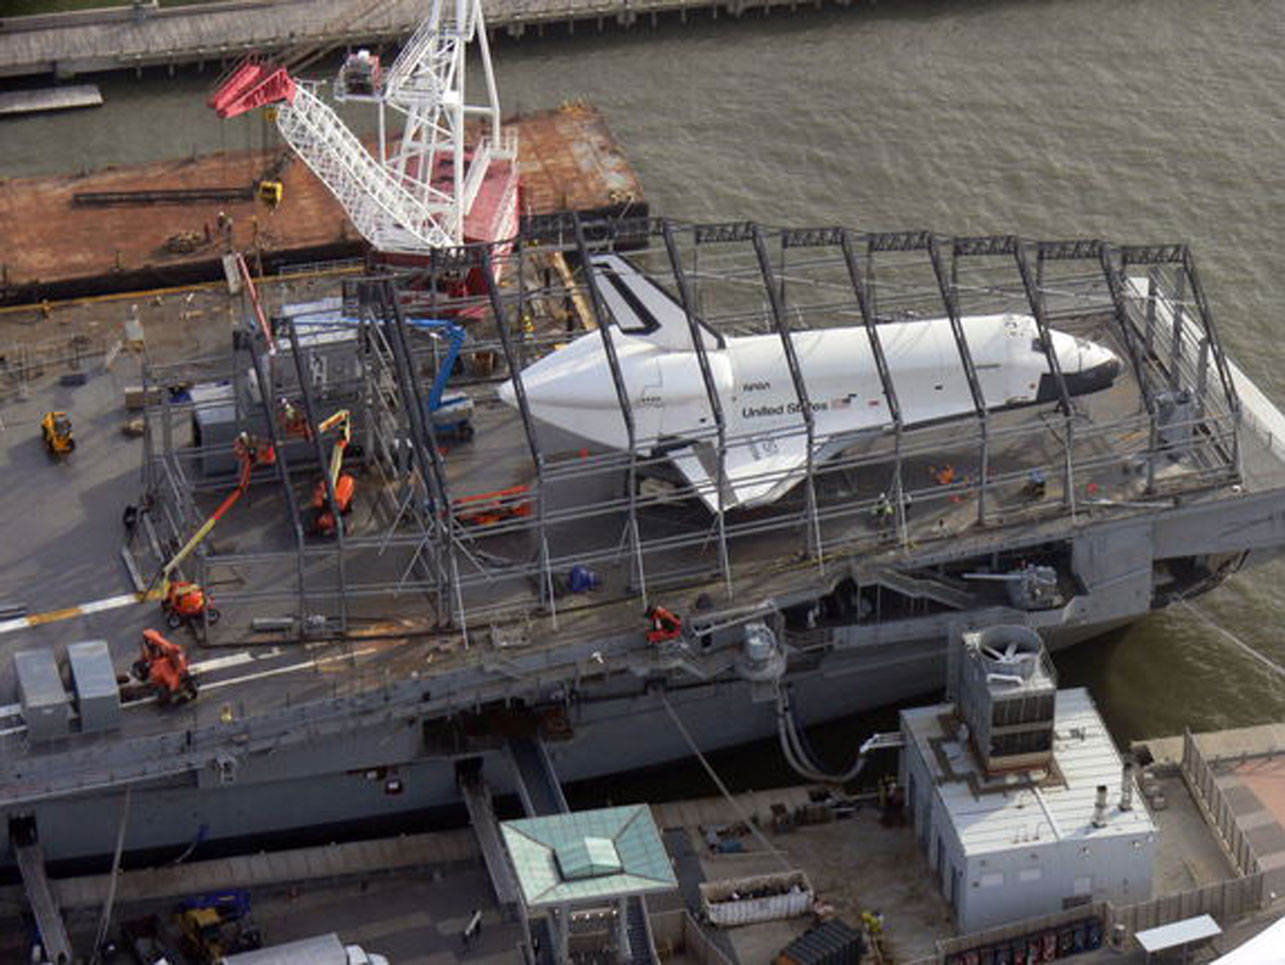 Space shuttle Enterprise's new home takes shape at NYC ...